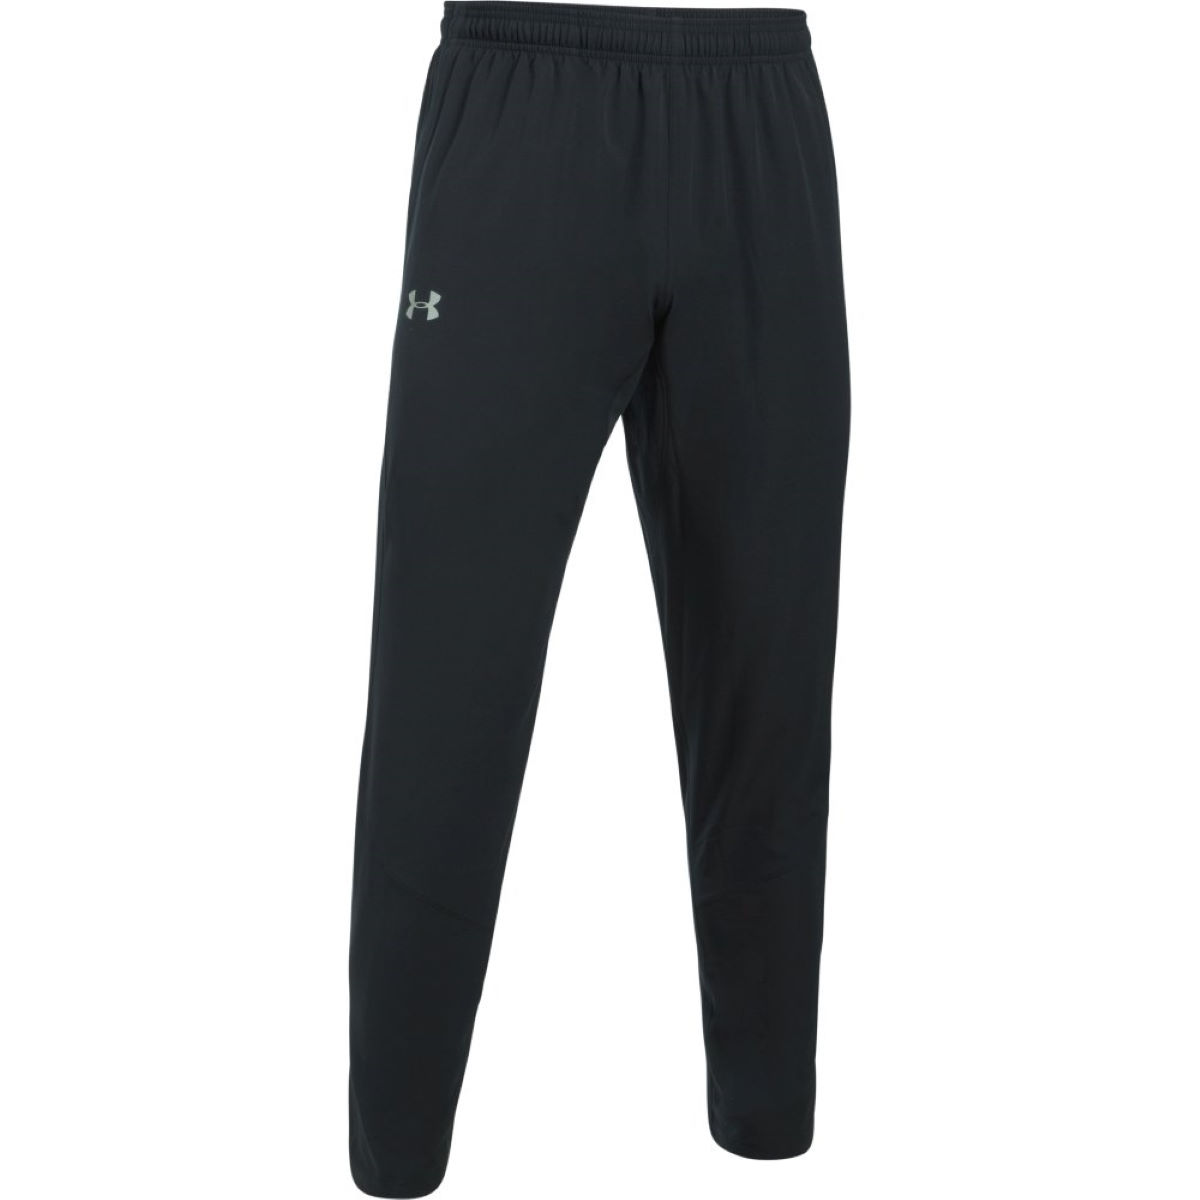 Pantalón de chándal Under Armour Run True SW - Pantalones